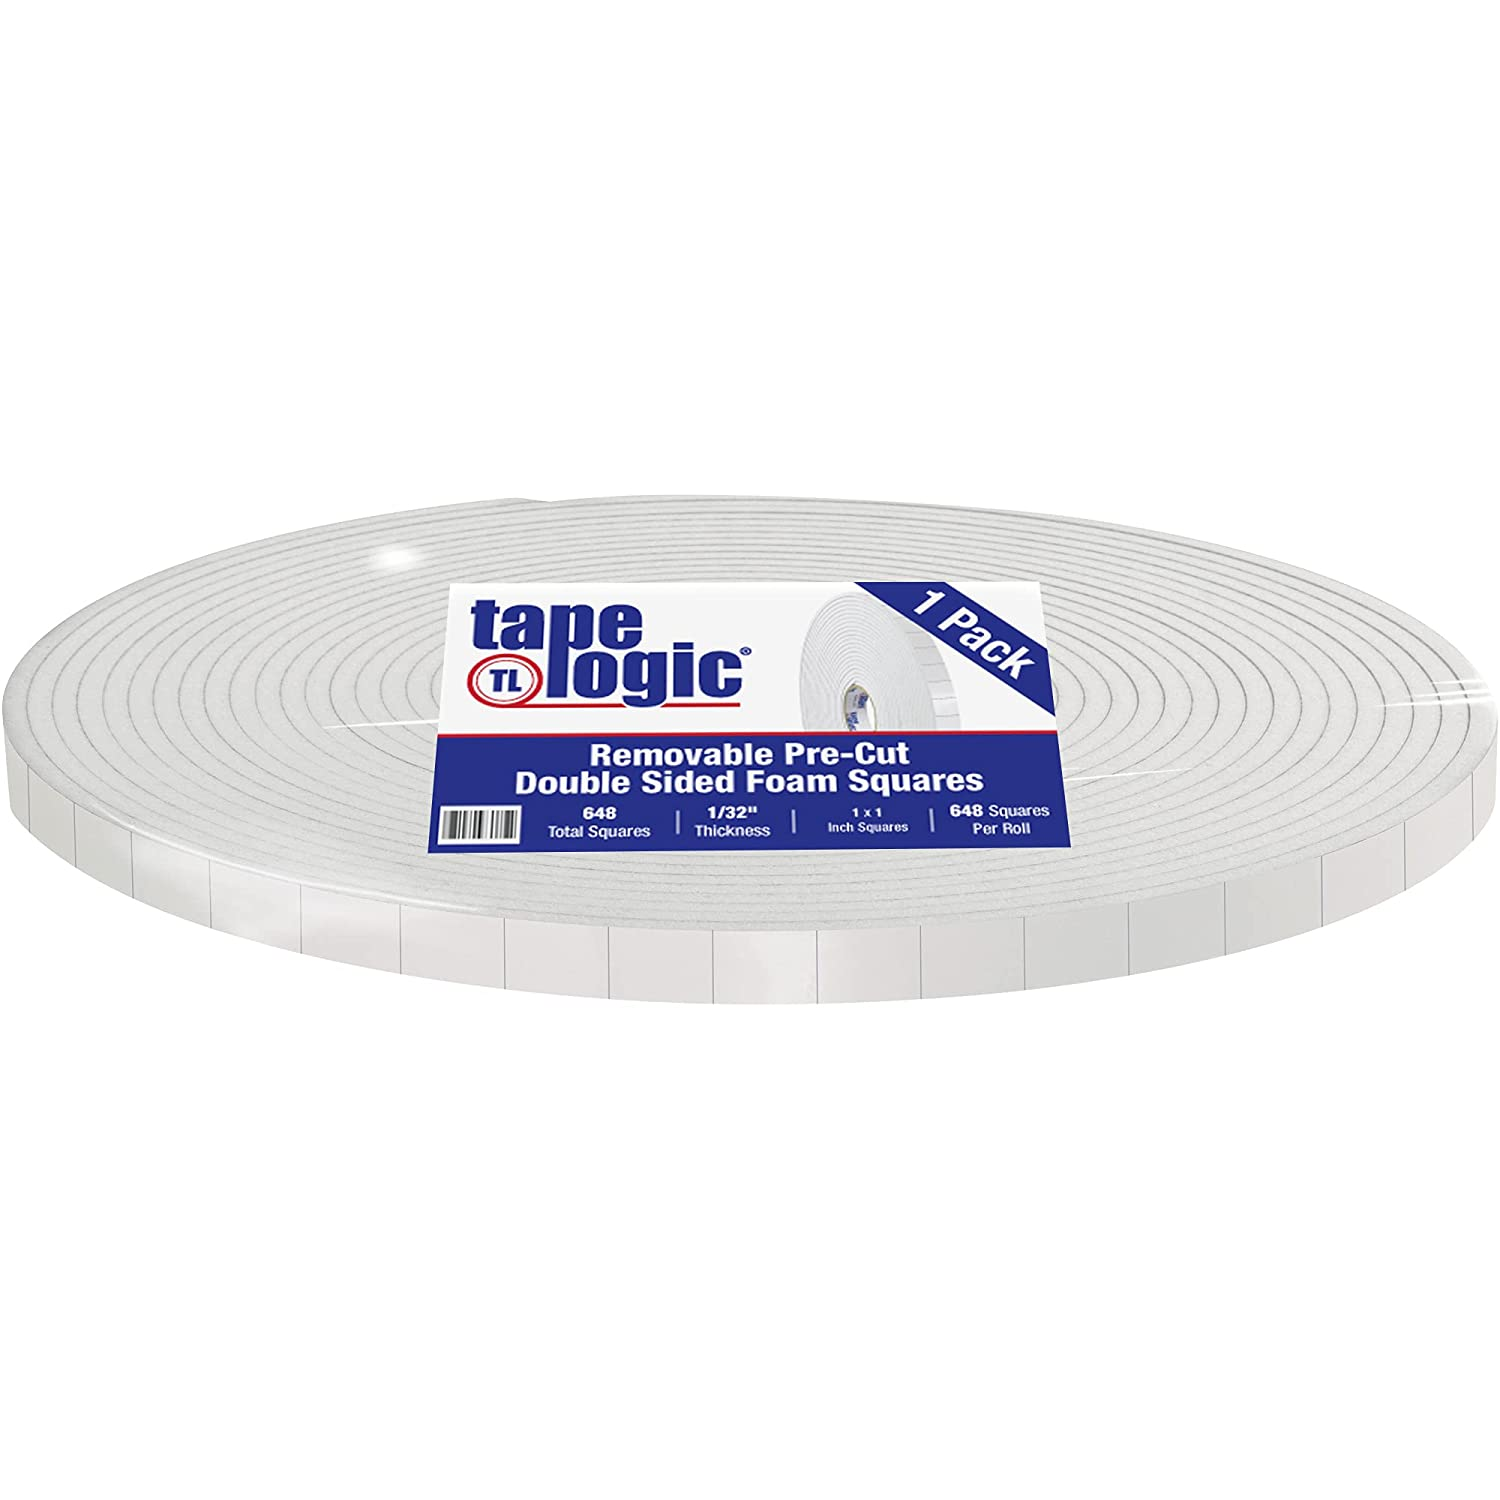 Aviditi Tape Logic Removable Double Sided Max 58% OFF Squares Foam 3 x 4 Jacksonville Mall